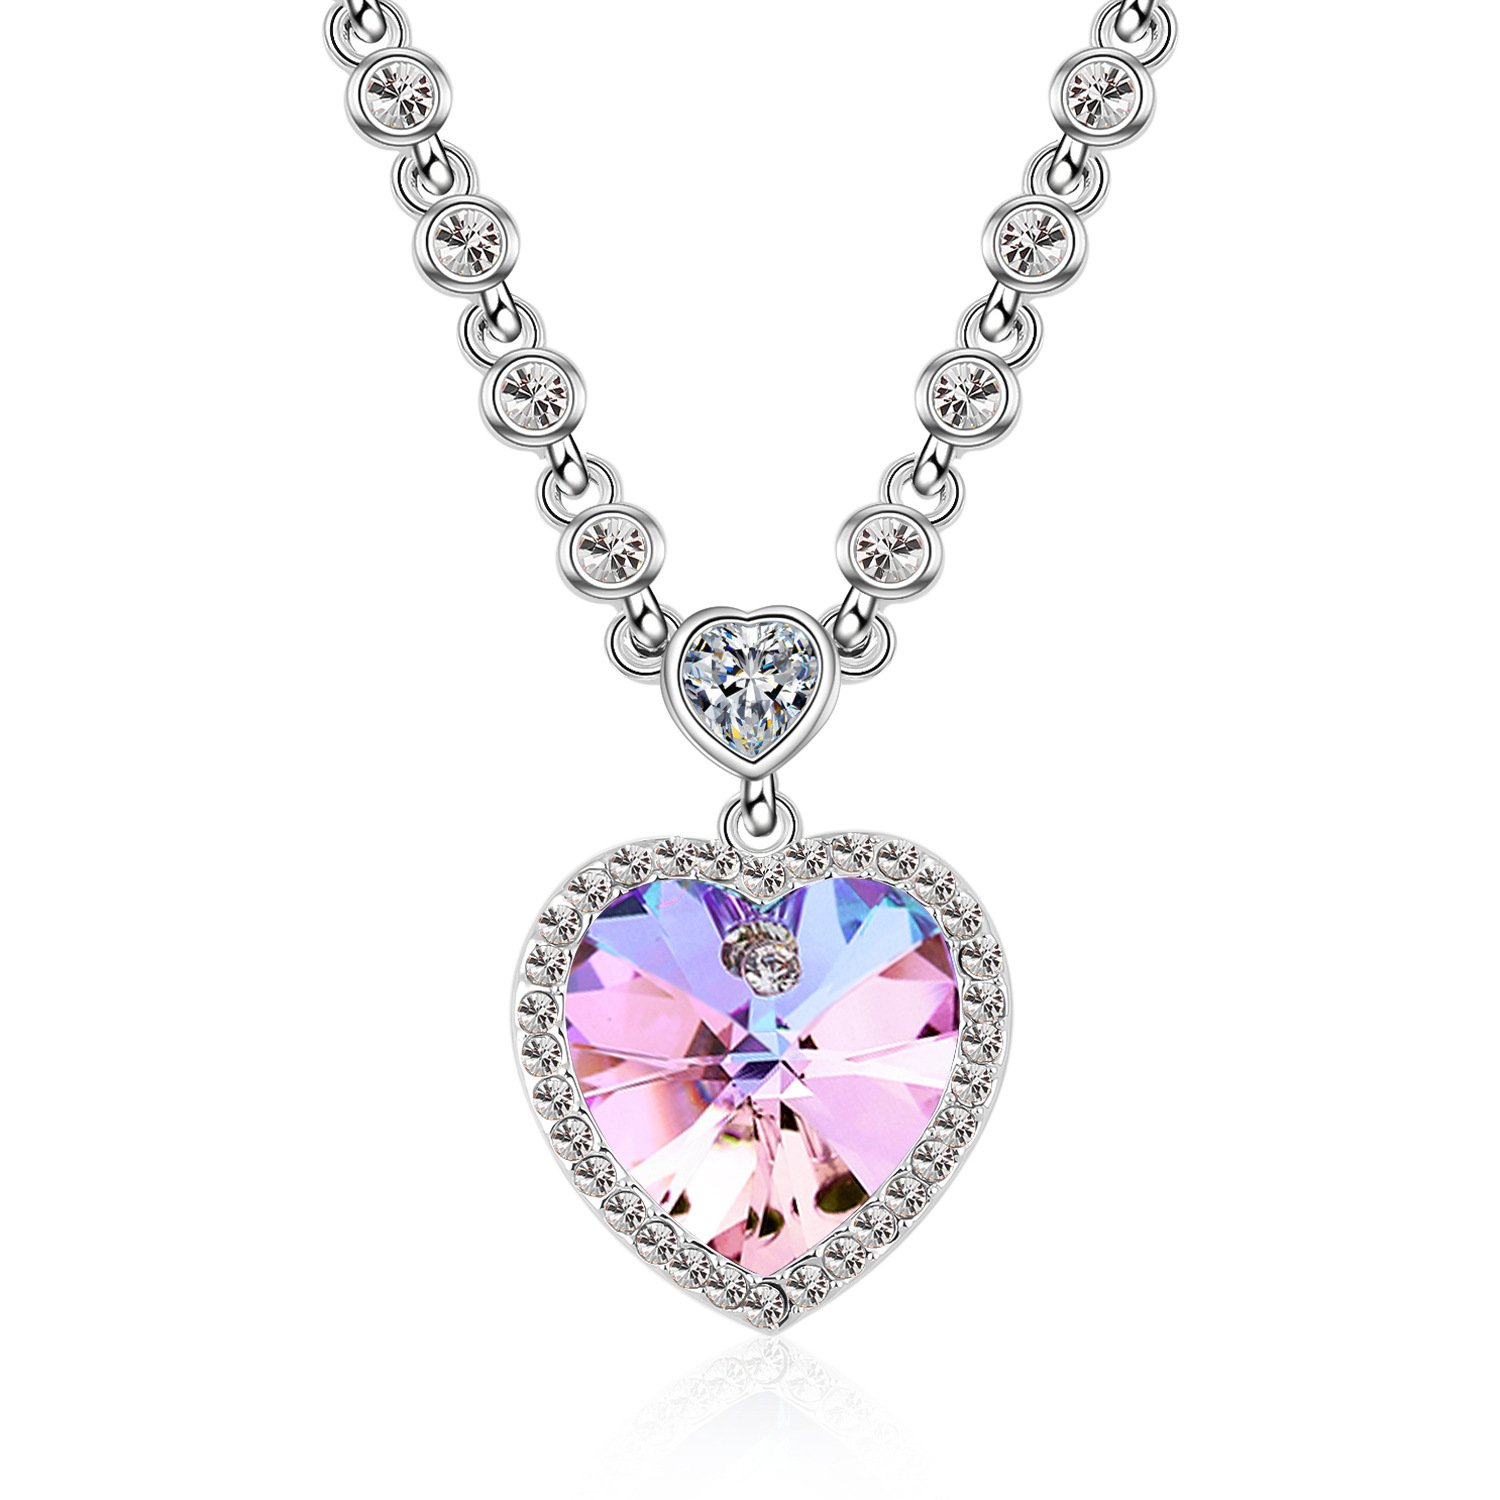 F-U Ocean Heart Necklaces for Girlfriend Love You Purple Crystals Silver Plated Collar Necklaces